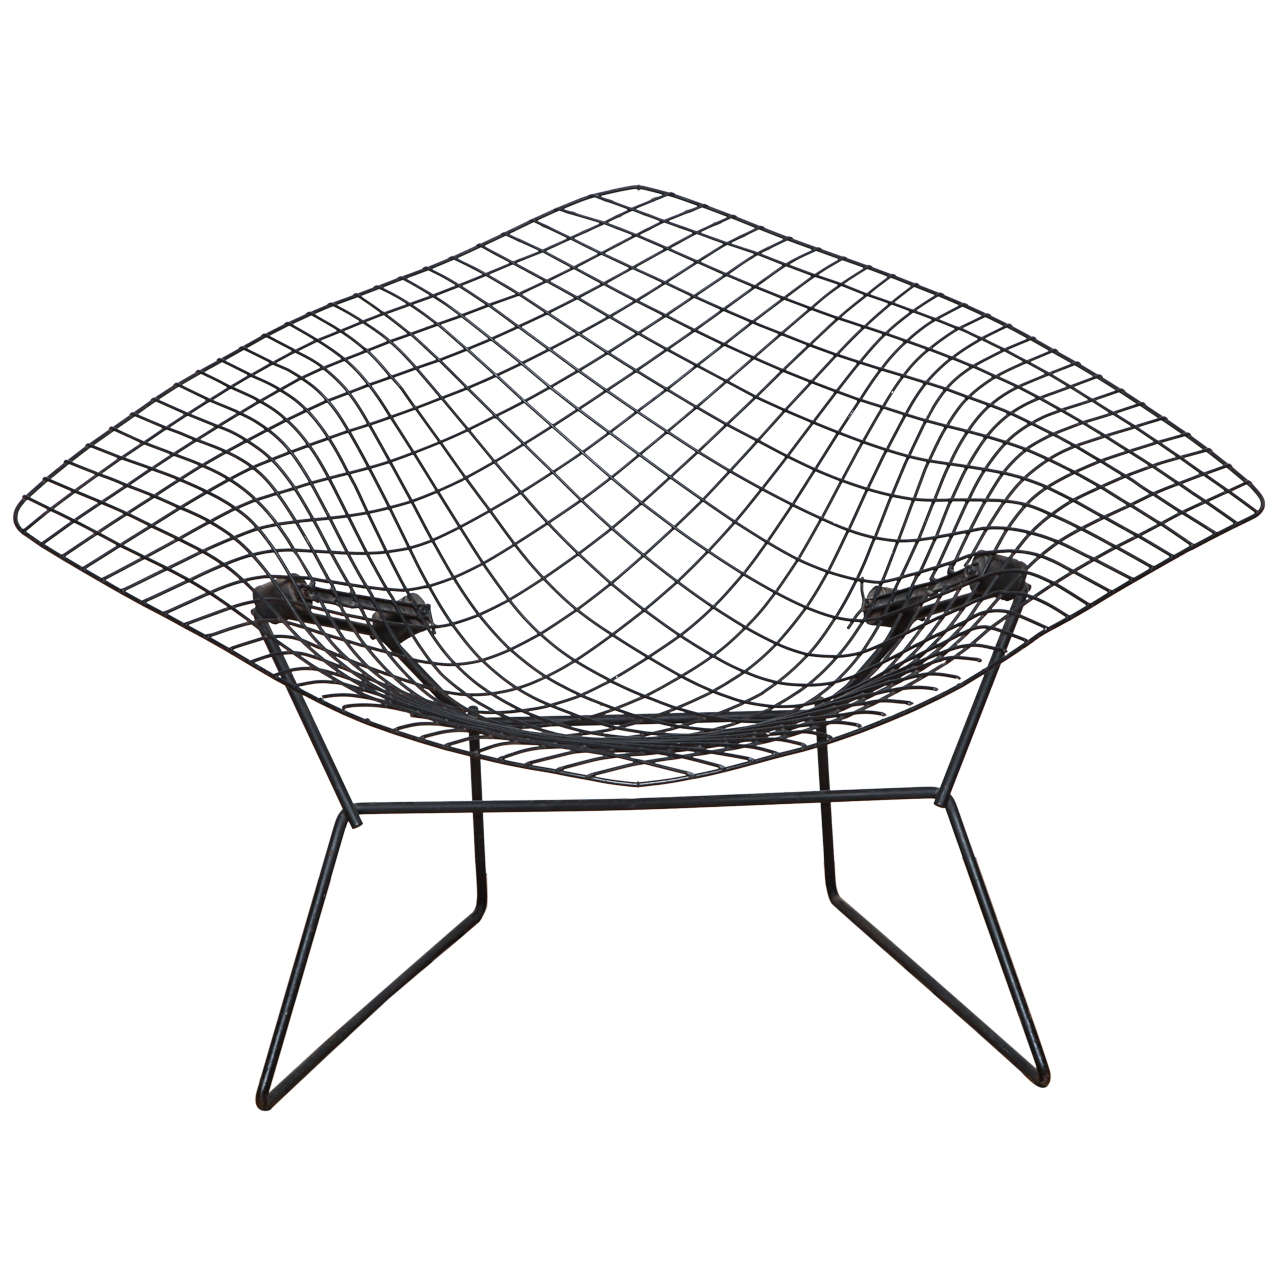 Large Bertoia Diamond Lounge Chair With Seat Pad For Knoll At 1stdibs